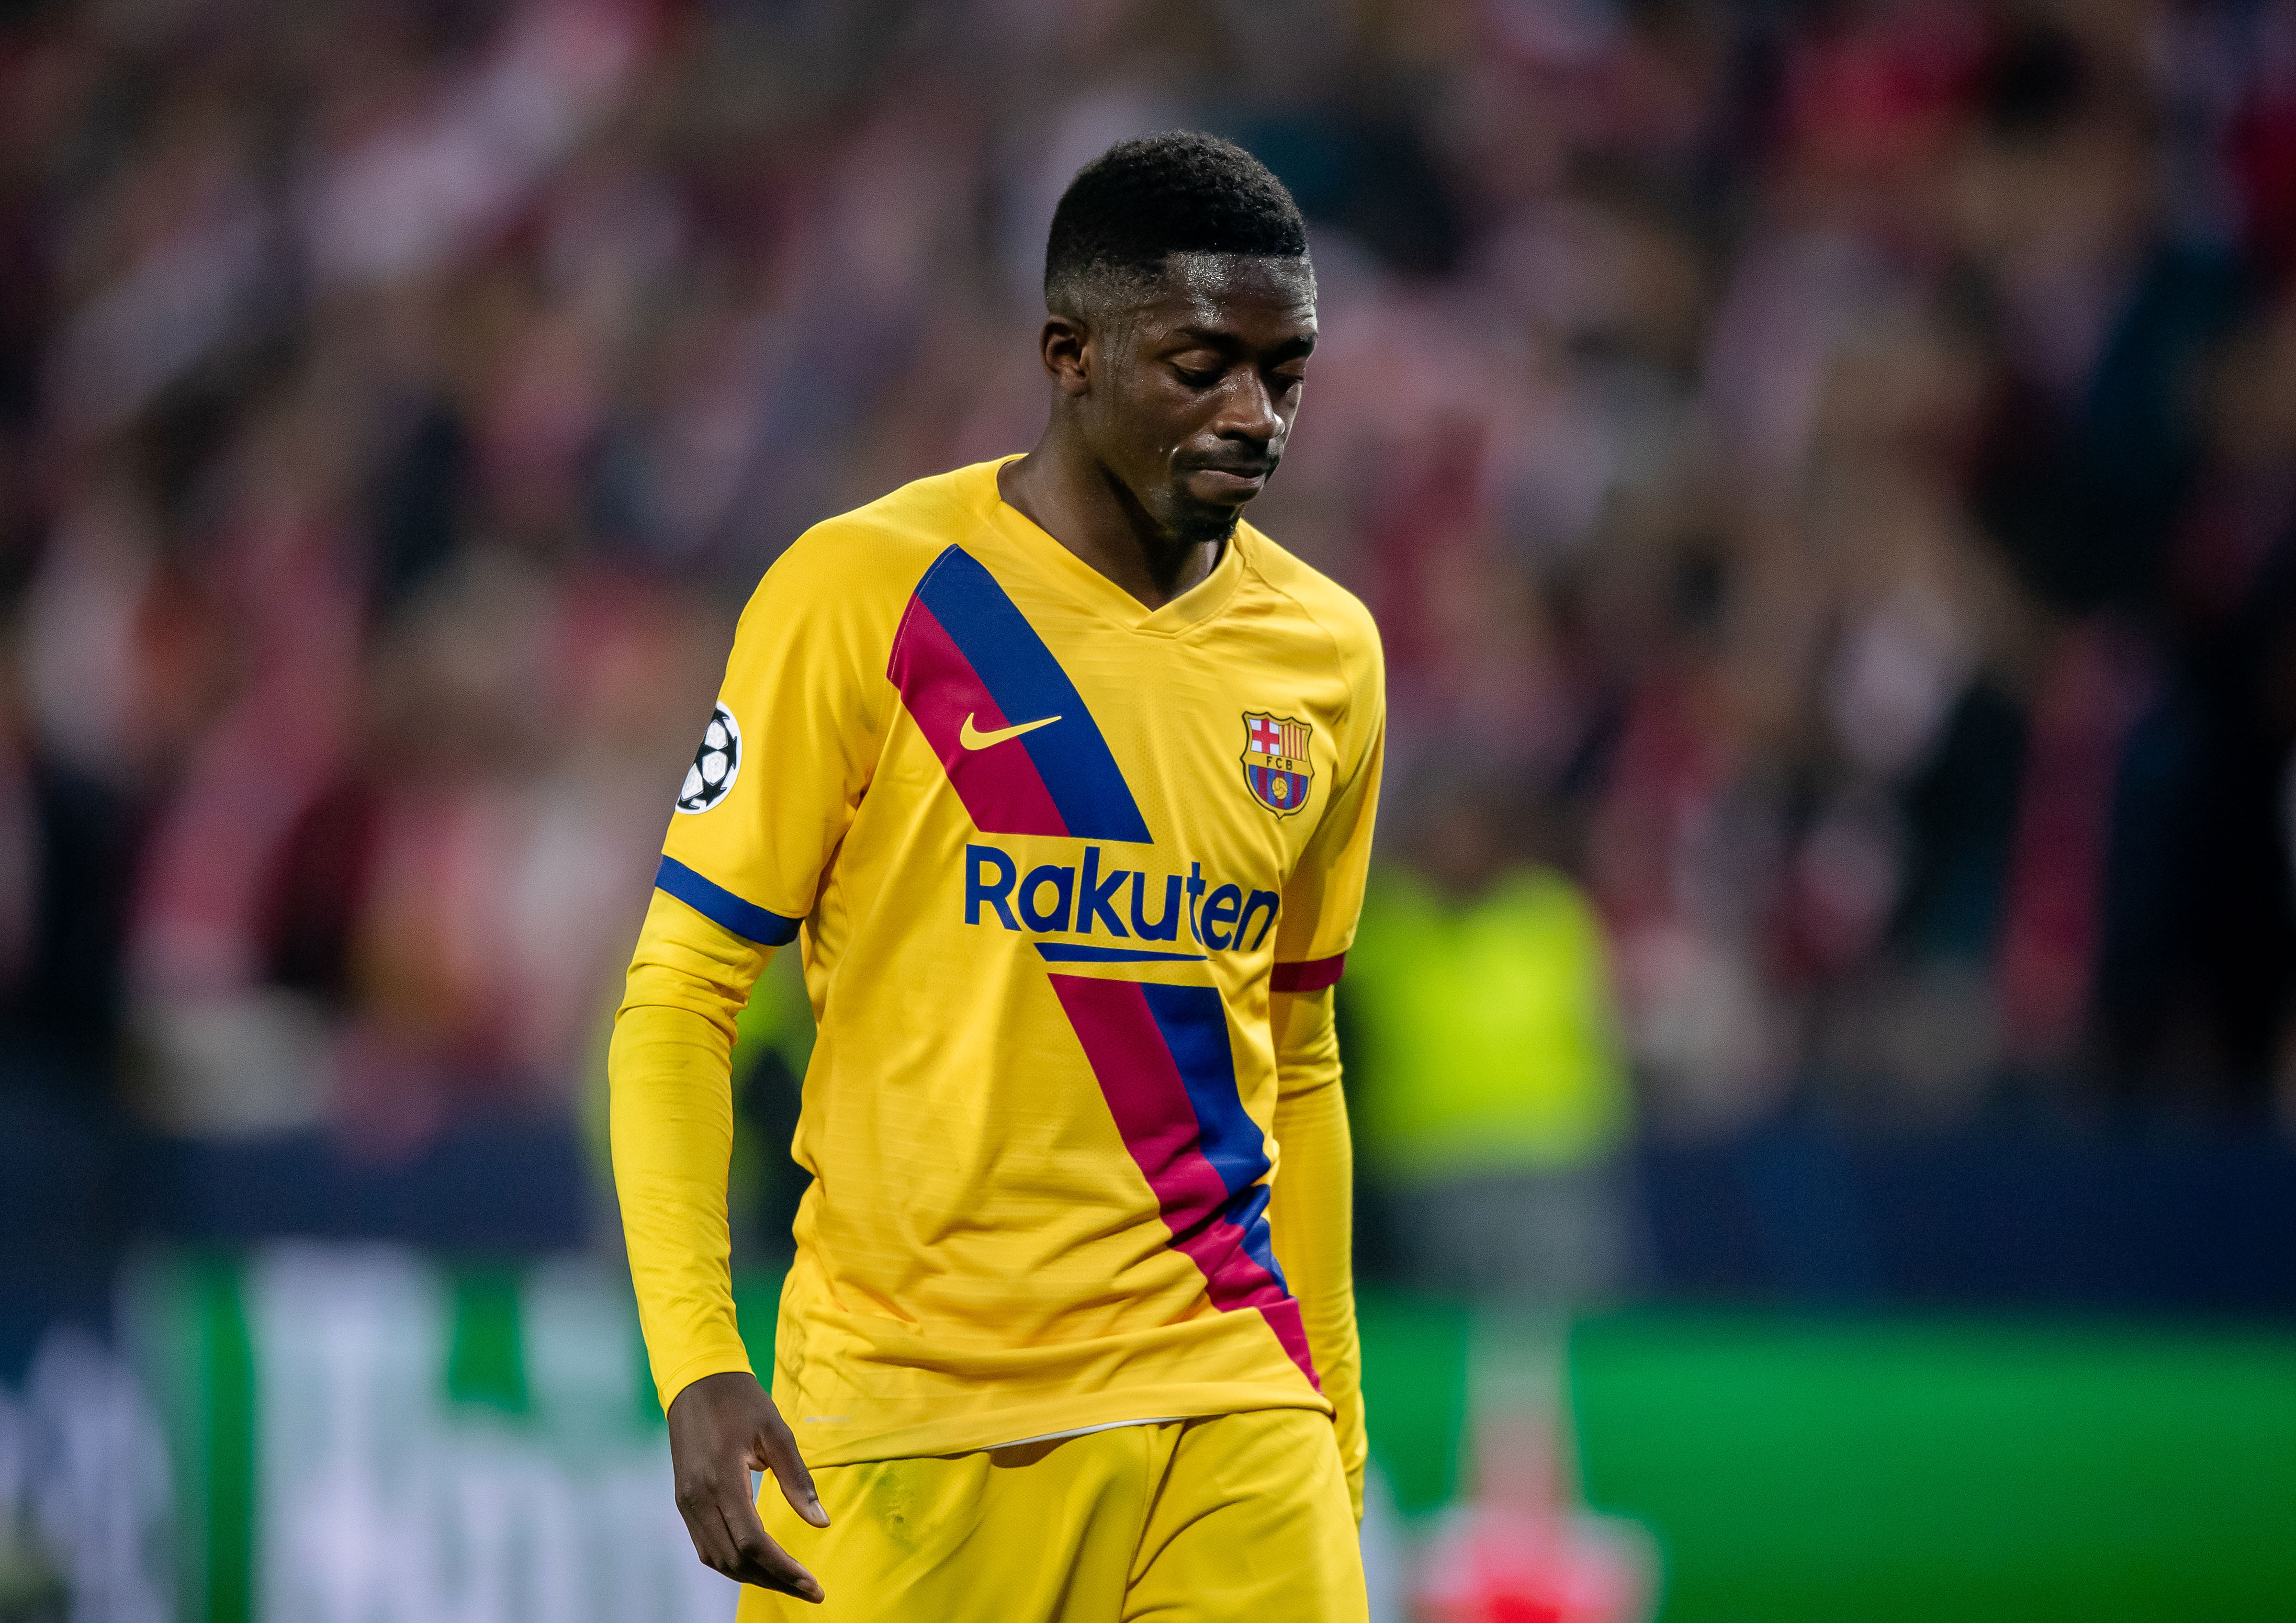 Will Ousmane Dembele make his way to Manchester United? (Photo by Thomas Eisenhuth/Getty Images)